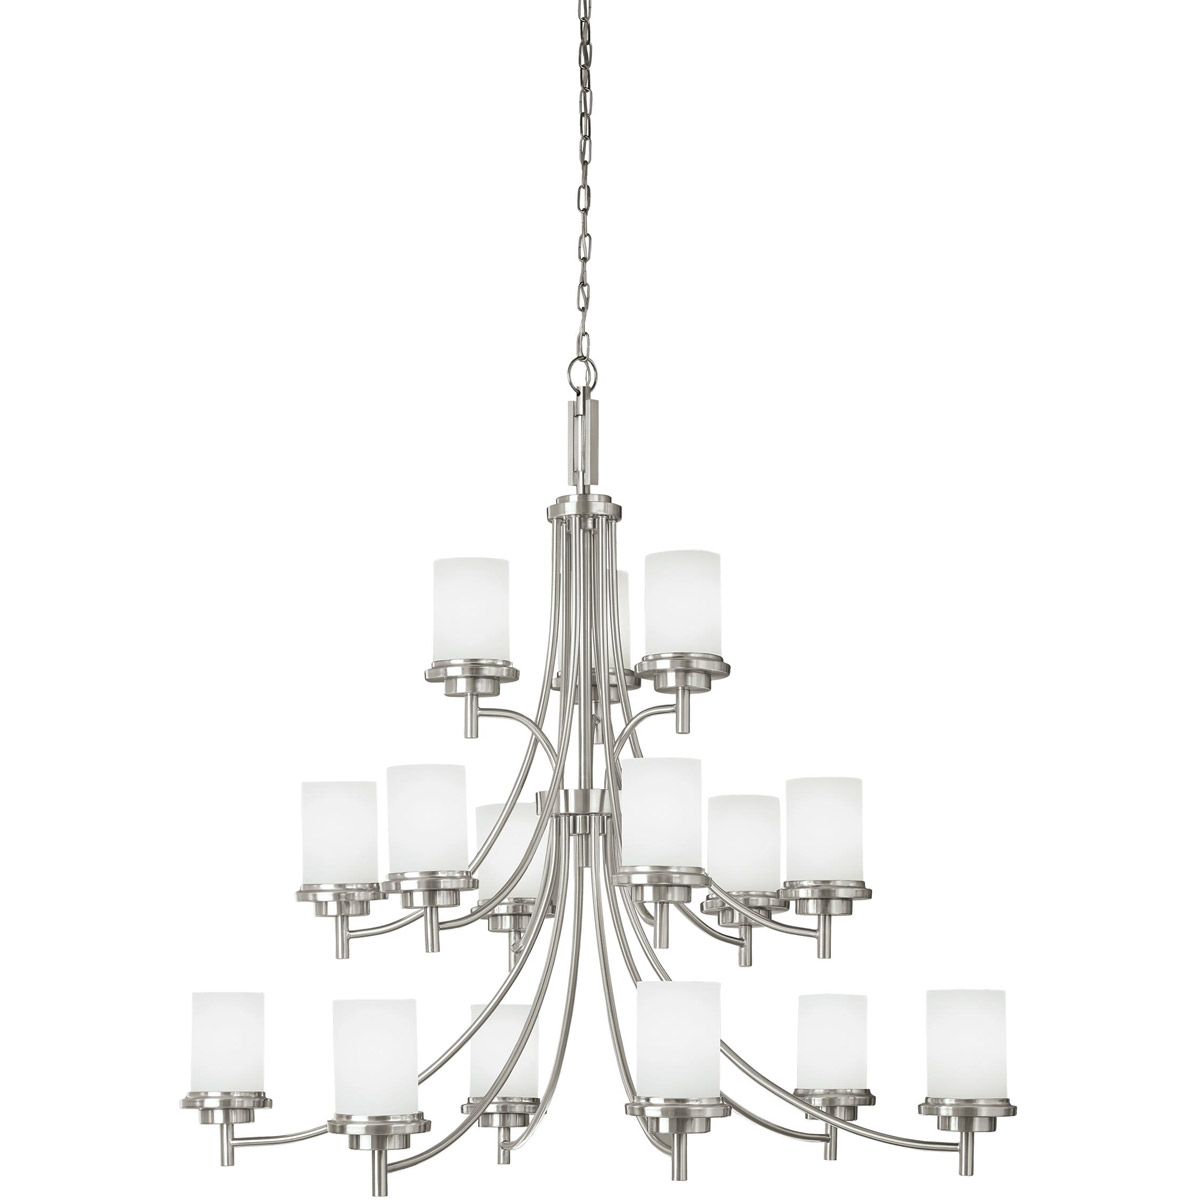 Sea Gull Winnetka 15 Light Chandelier Multi-Tier in Brushed Nickel 31663-962 photo